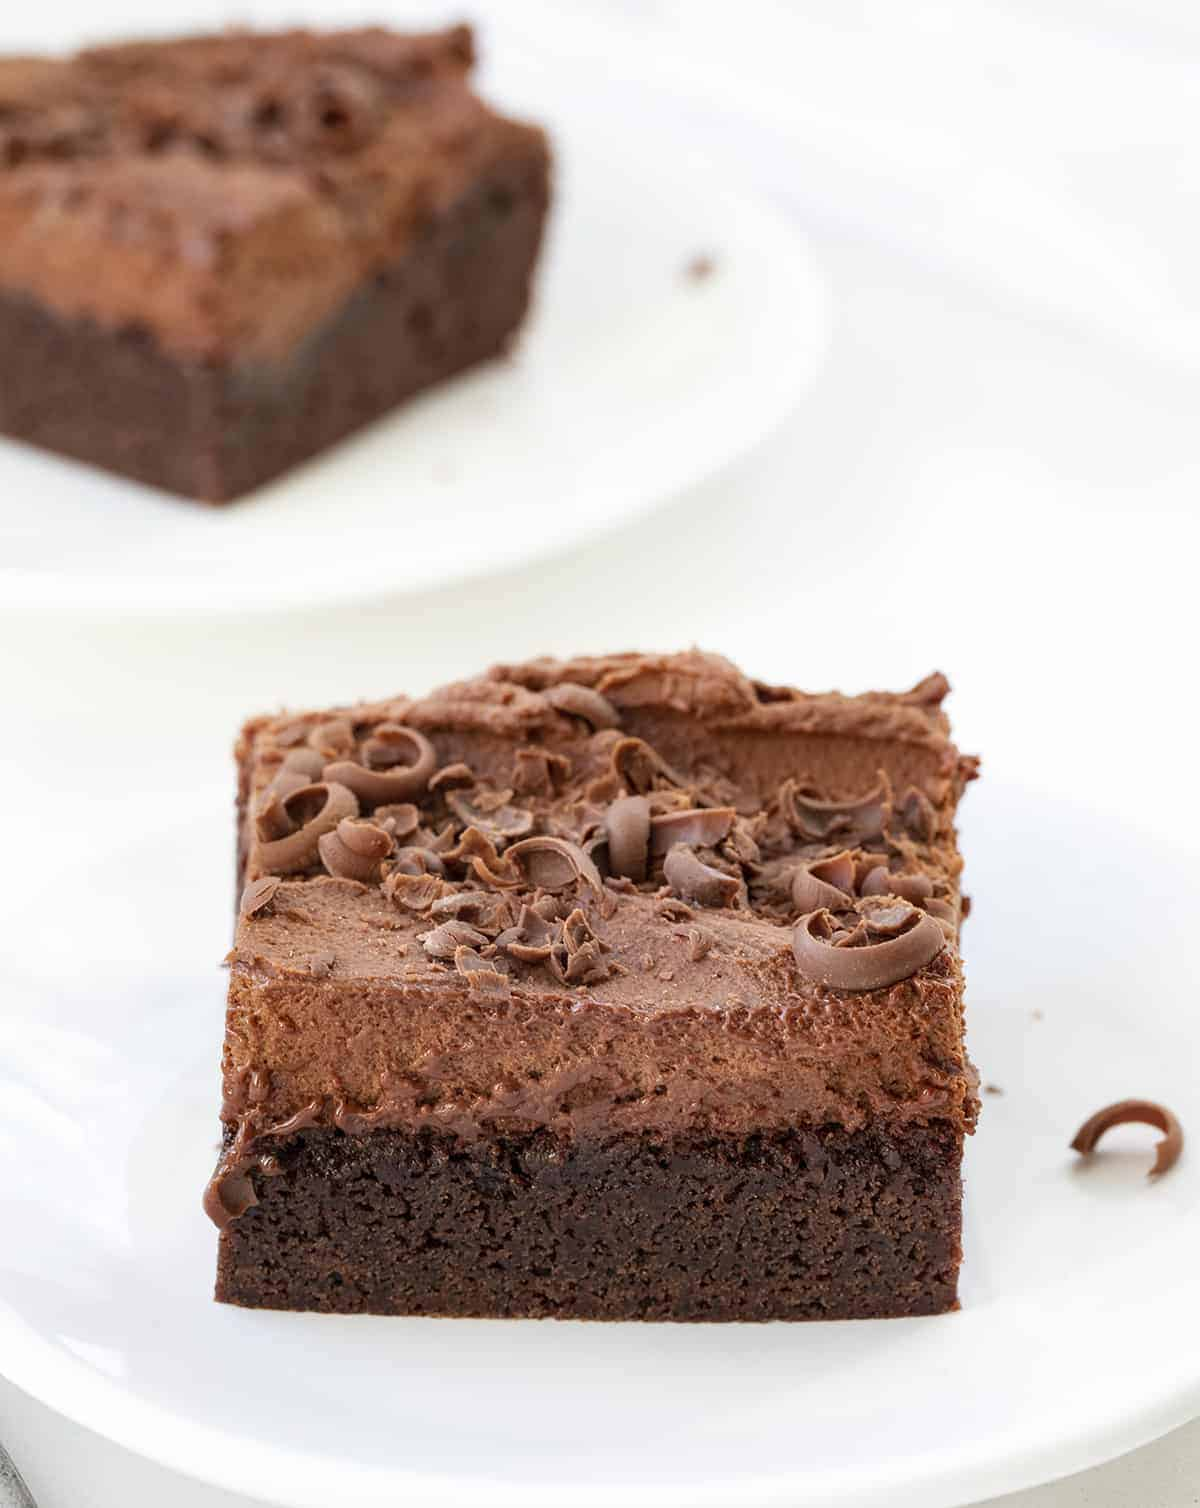 https://iambaker.net/wp-content/uploads/2021/03/mousse-brownies-3.jpg